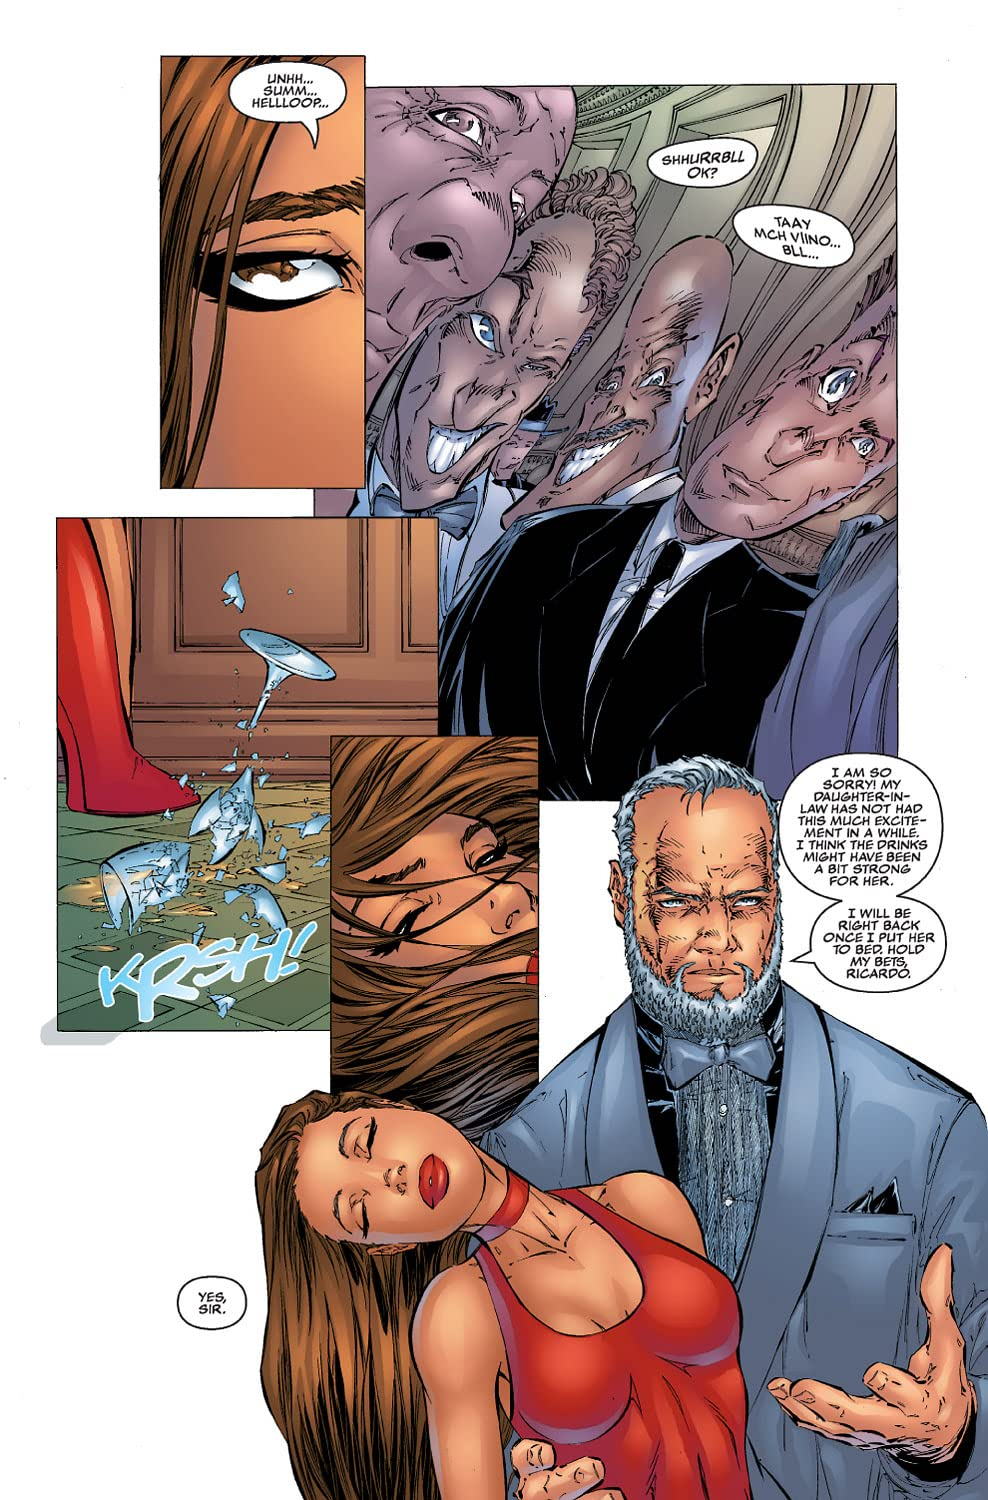 Witchblade #16